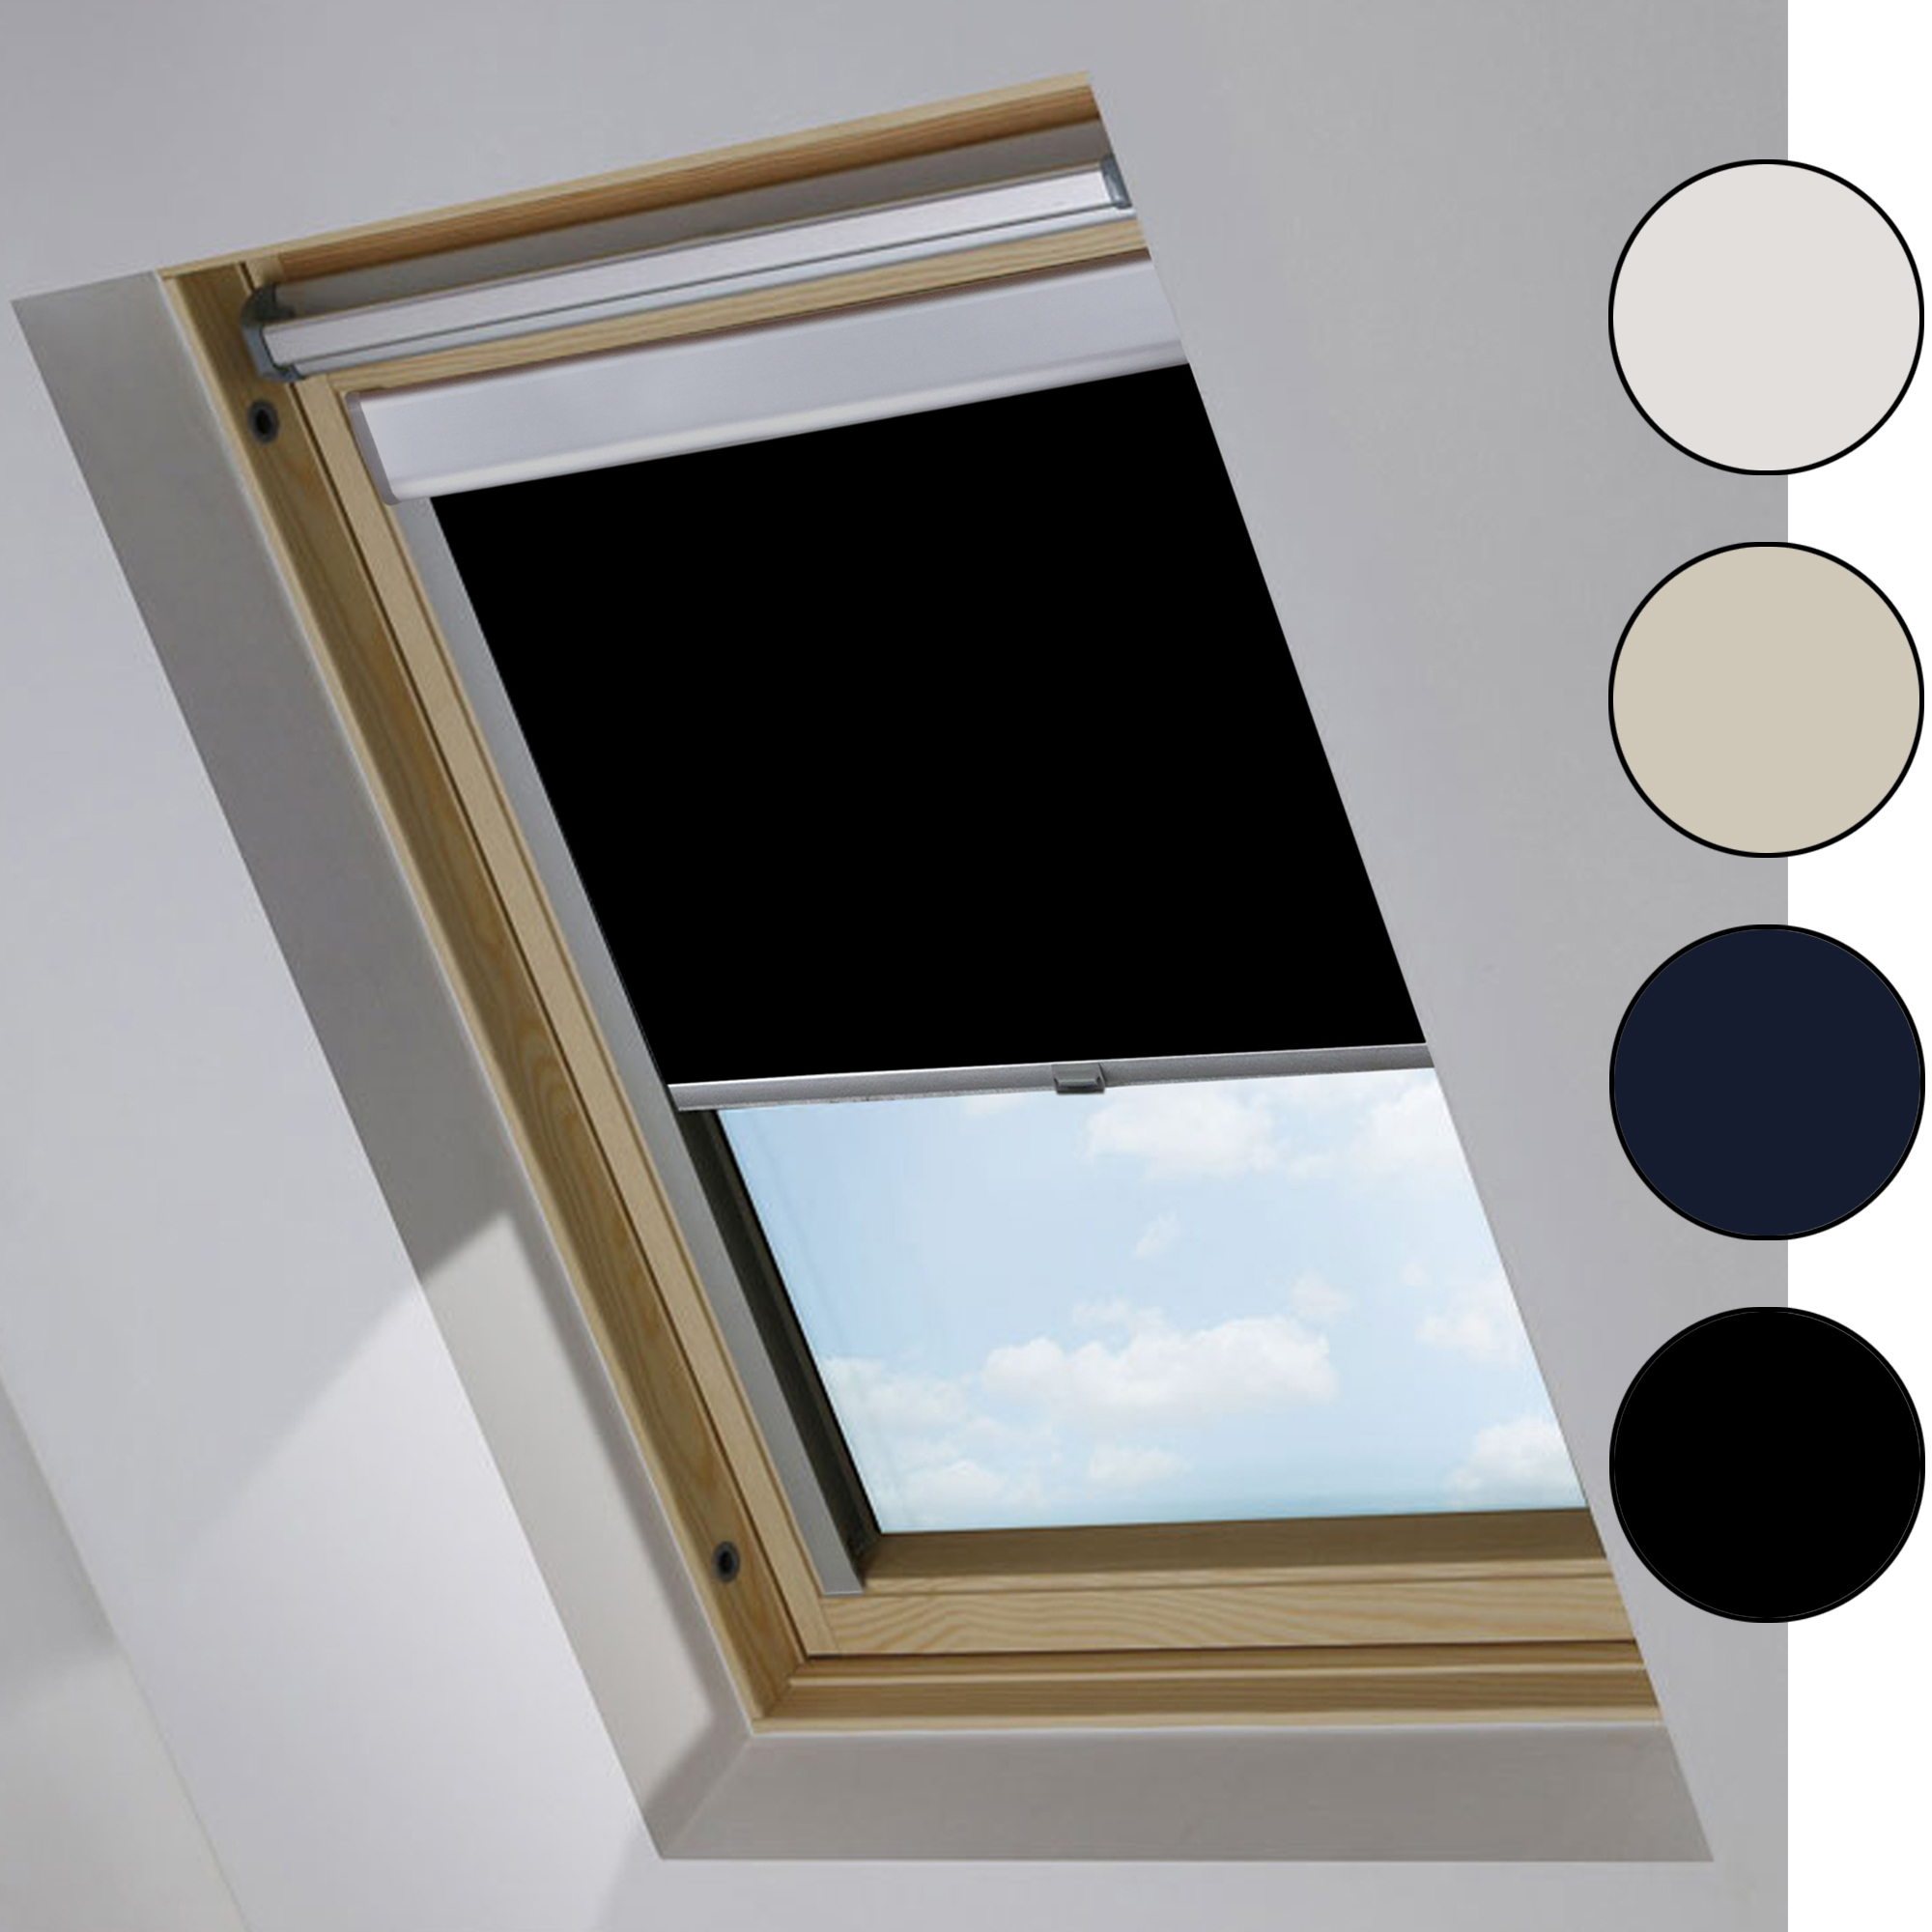 Verdunkelungsrollo passend f r velux dachfenster for Verdunkelungsrollo fur velux dachfenster